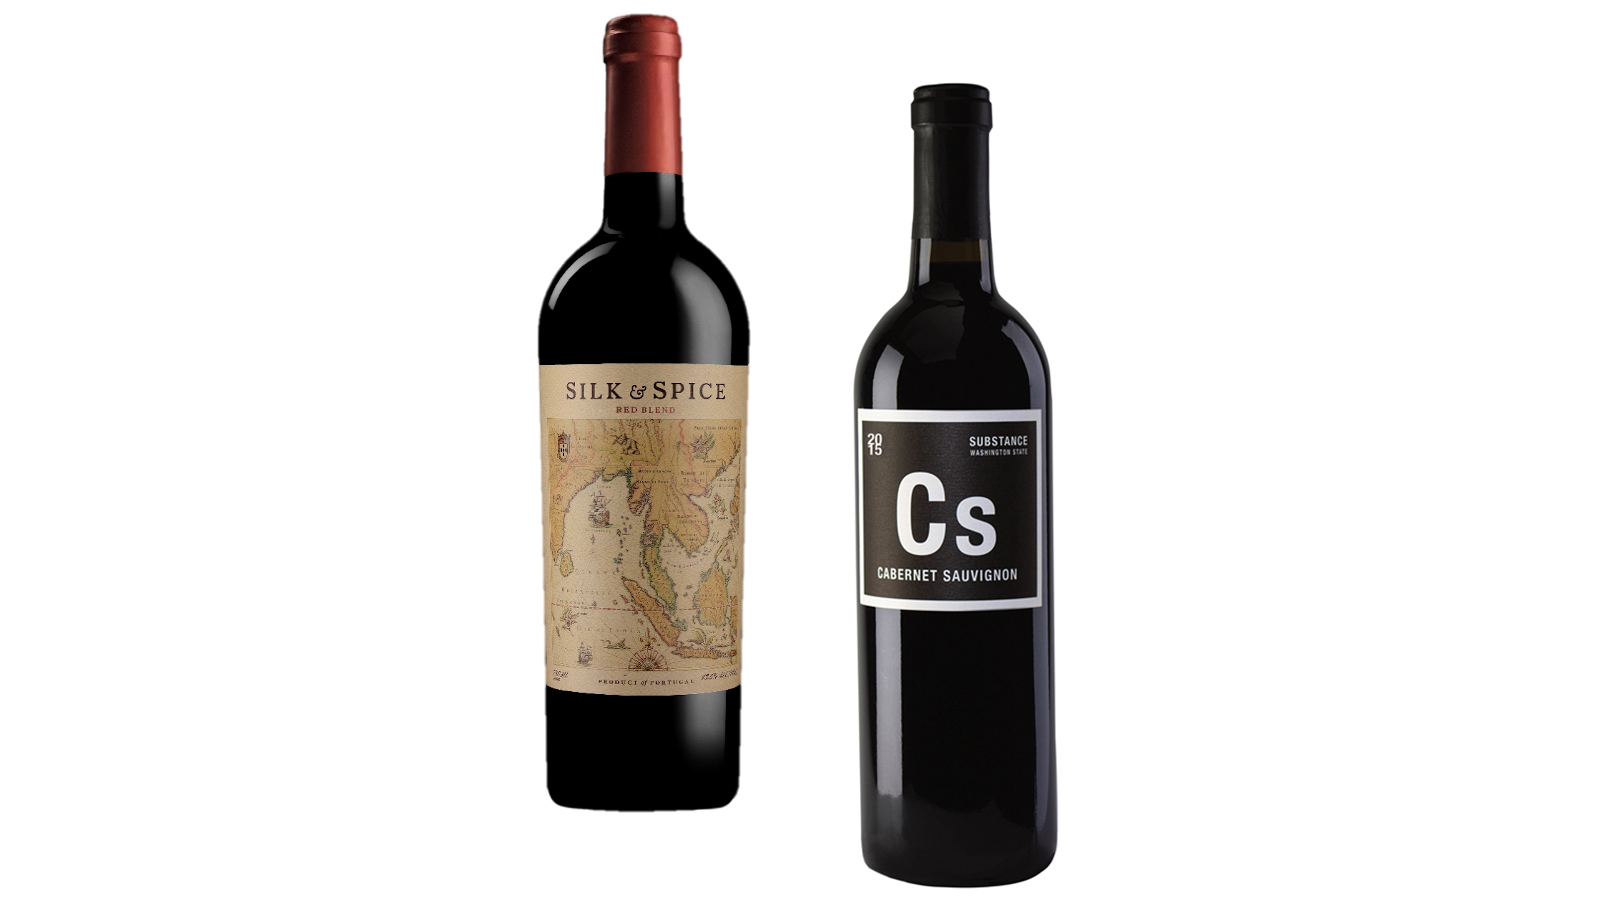 Substance Cabernet Sauvignon & Silk & Spice Red Blend